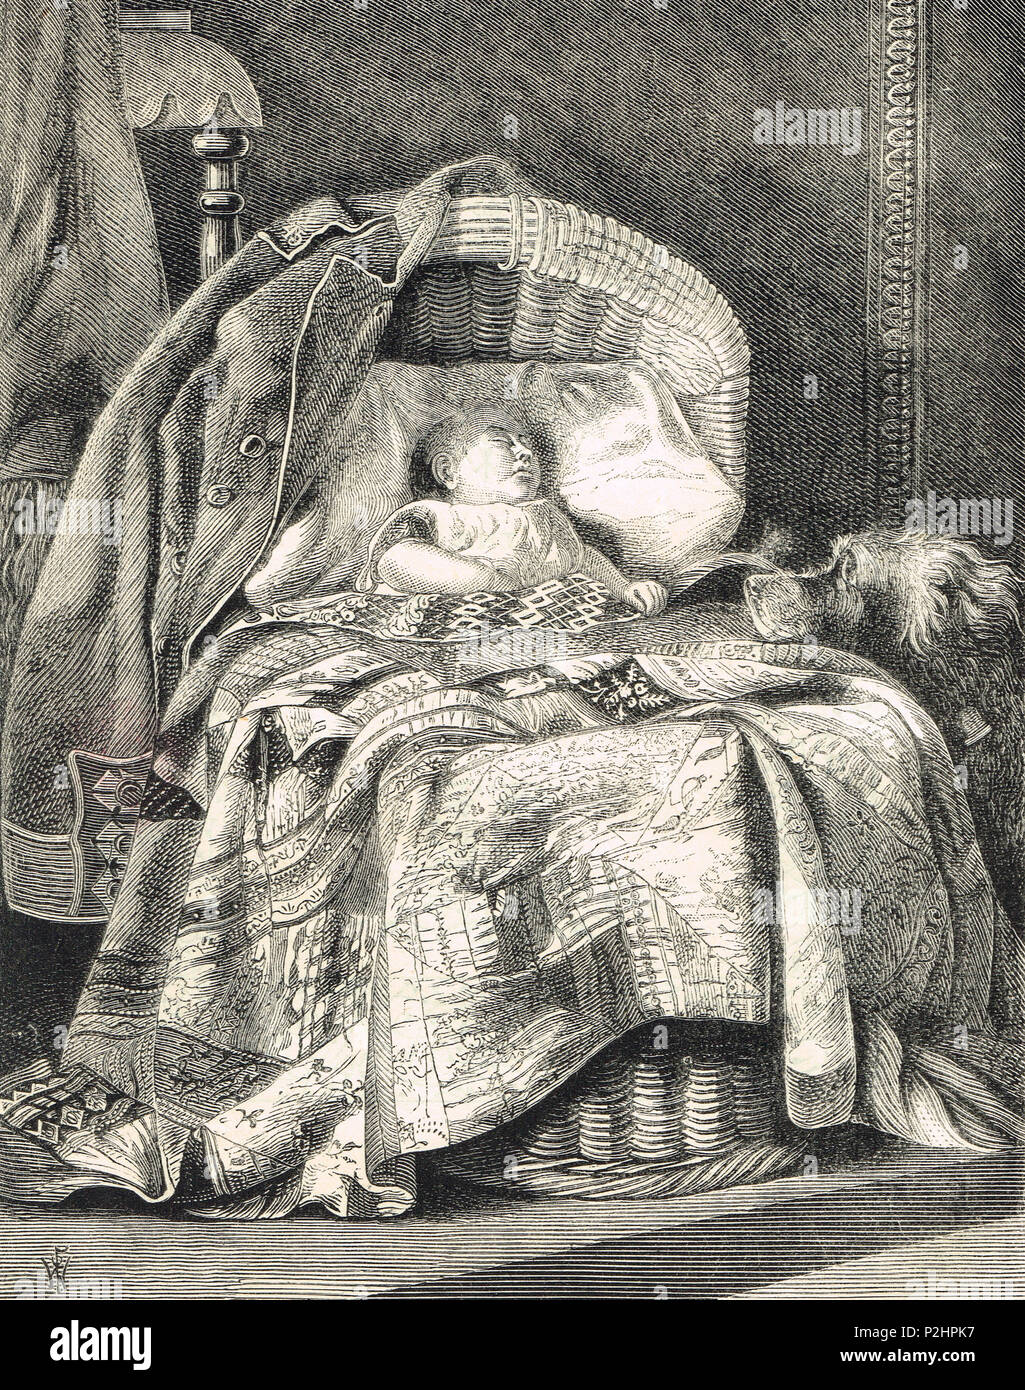 A faithful dog watching over a baby, 19th Century illustration of 1873 - Stock Image